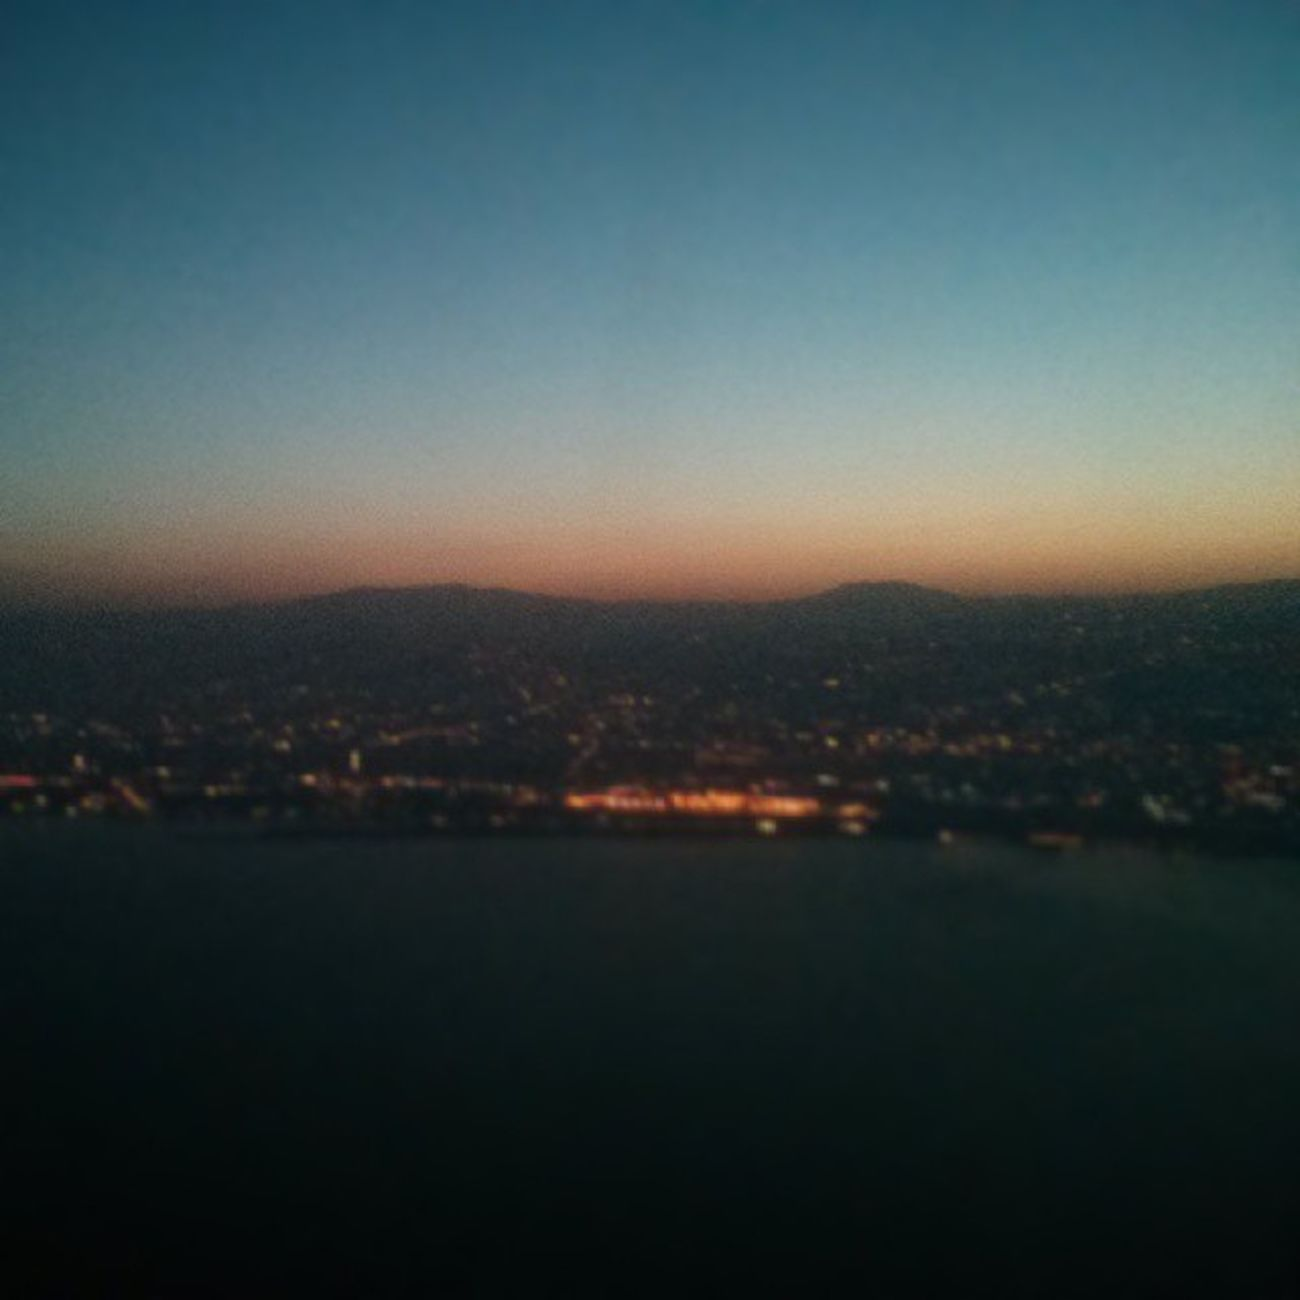 #dbayeh #jounieh #sunrise from the plane Sunrise Jounieh Dbayeh